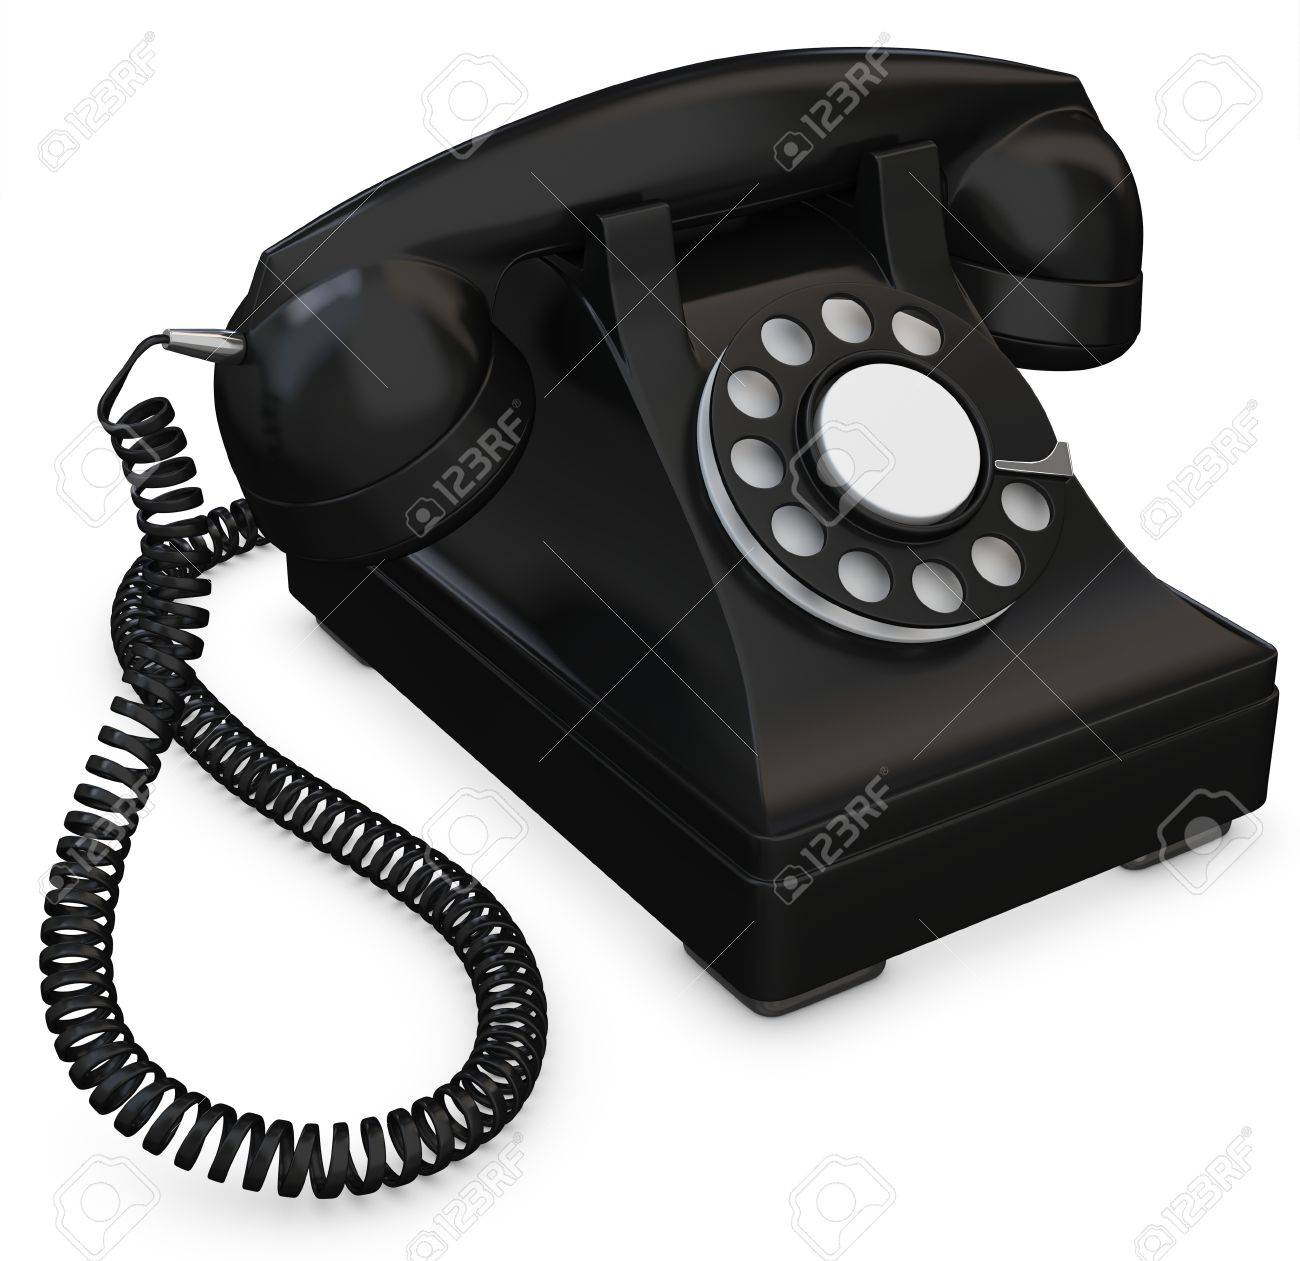 3d Black Old Fashioned Phone On White Background Stock Photo